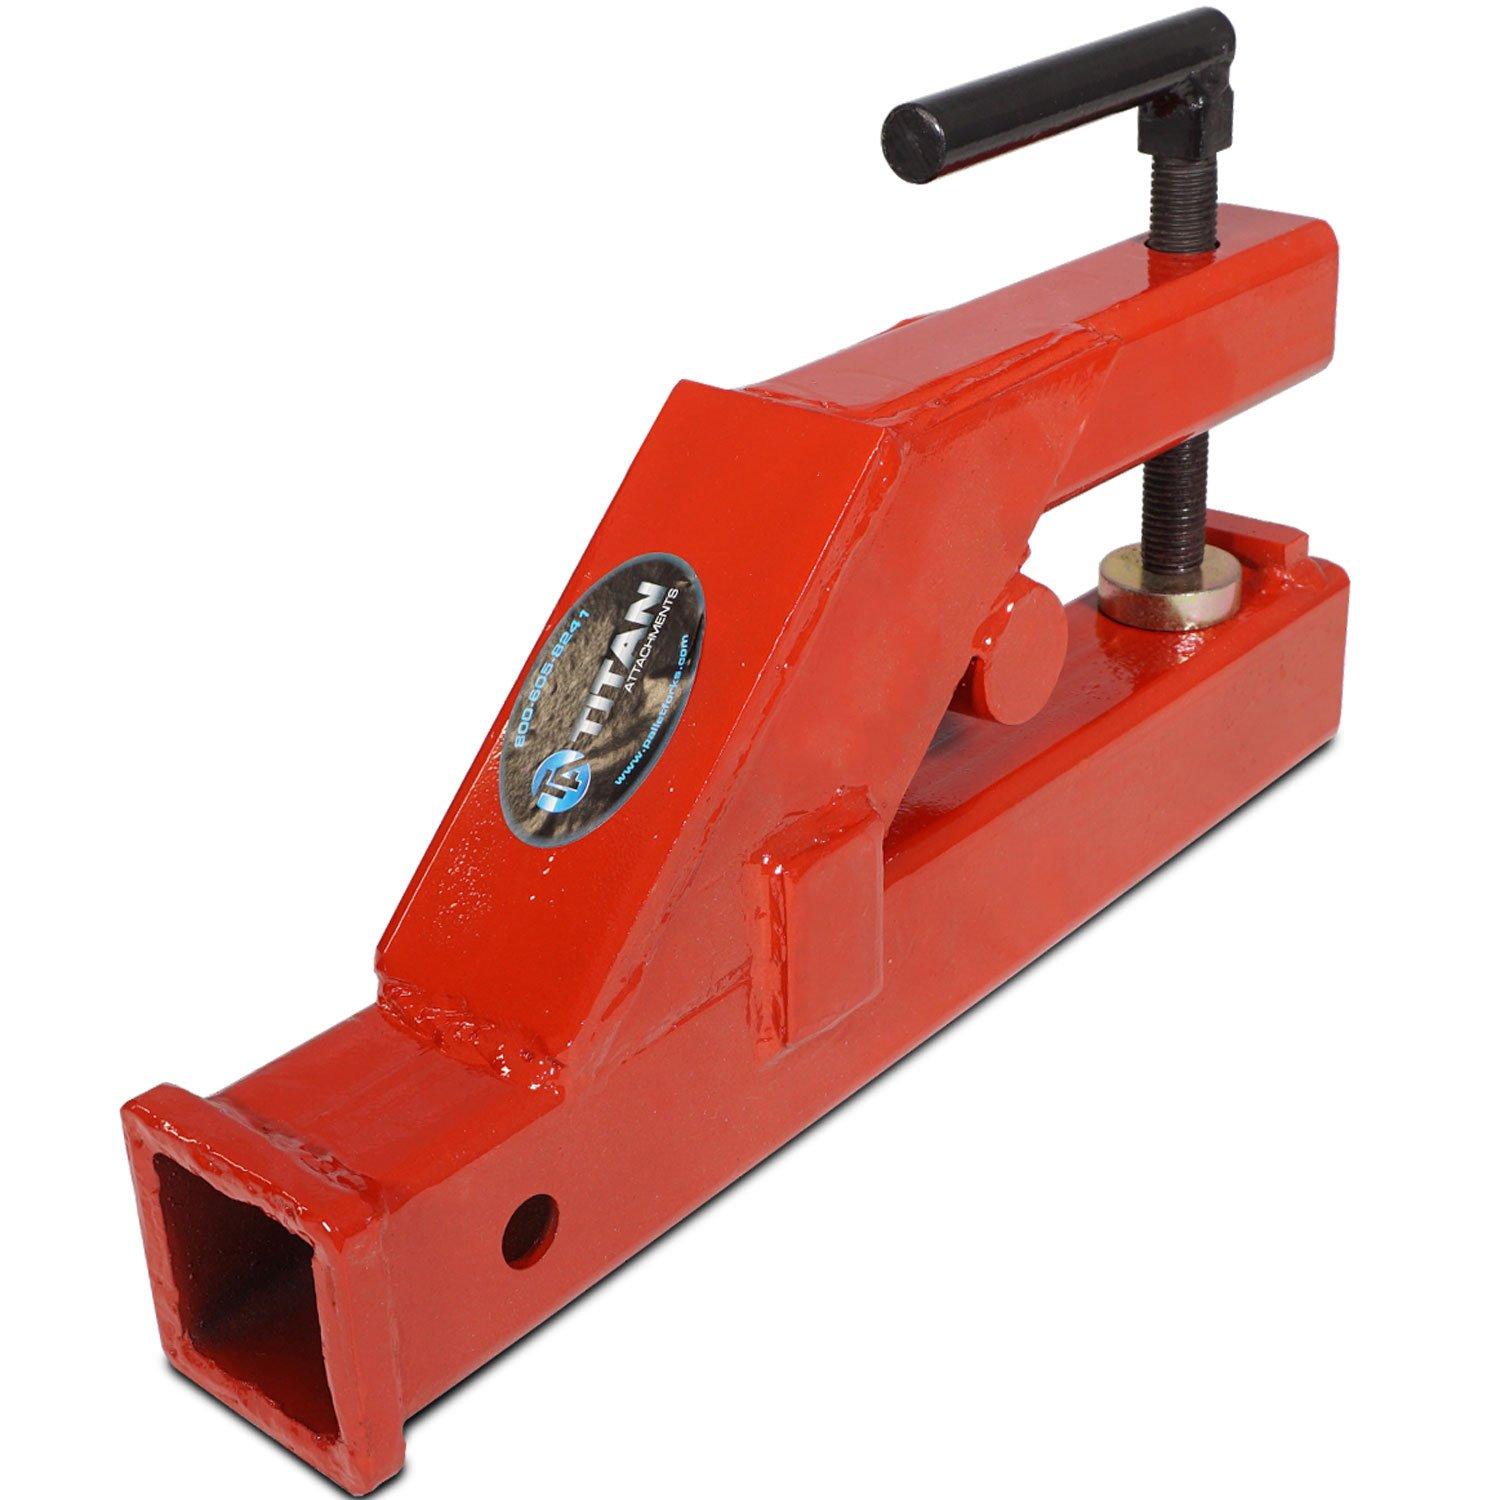 Tractor Bucket Hoist : Buy clamp on tractor bucket forks receiver hitch skid